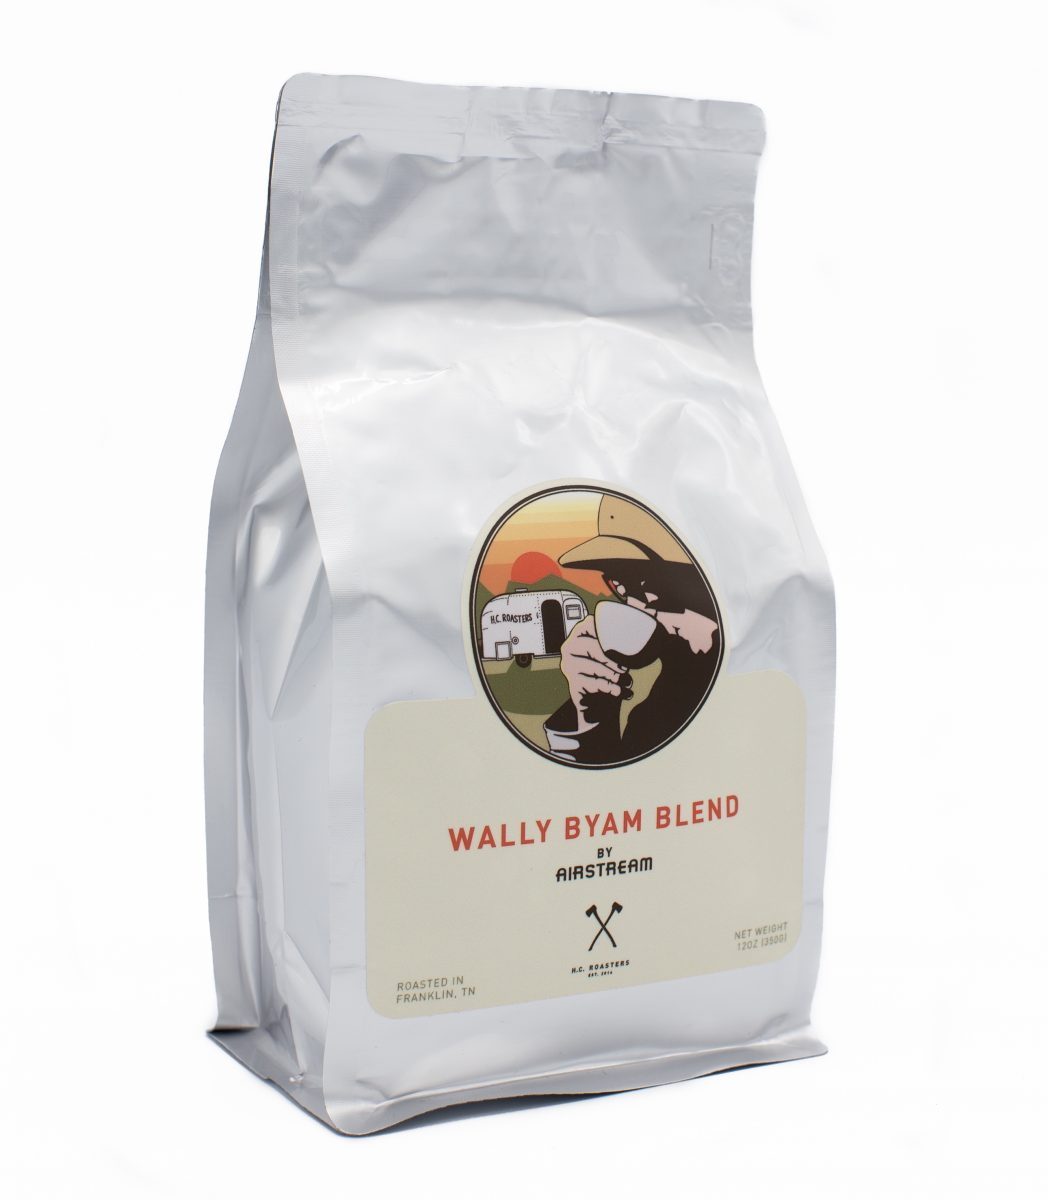 wally byam blend honest coffee